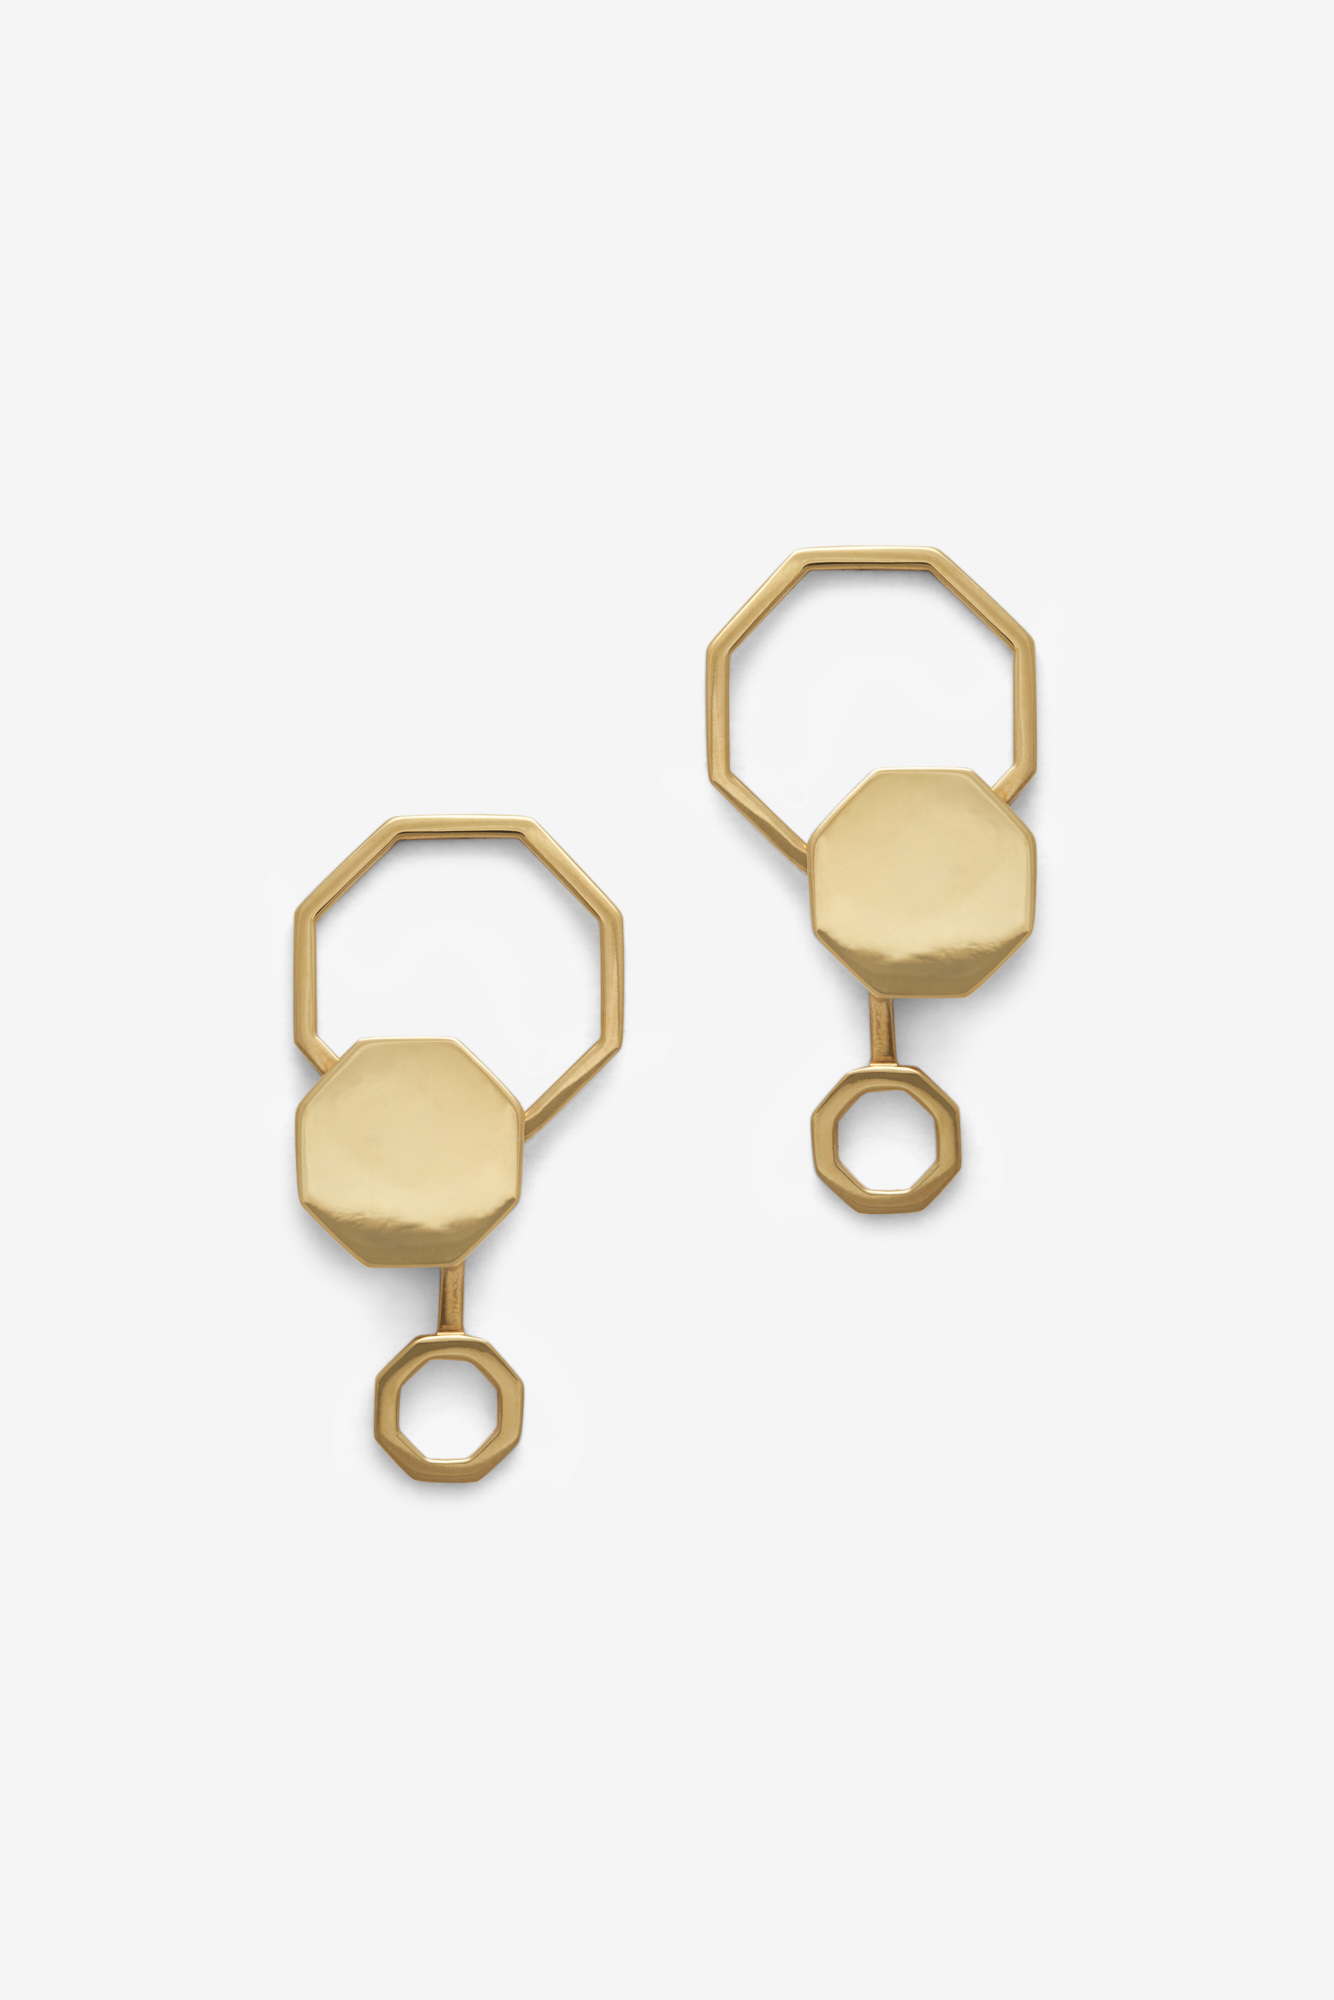 19-03-5-1-006-113-09_Beehaive Earring_Gold Plated_03